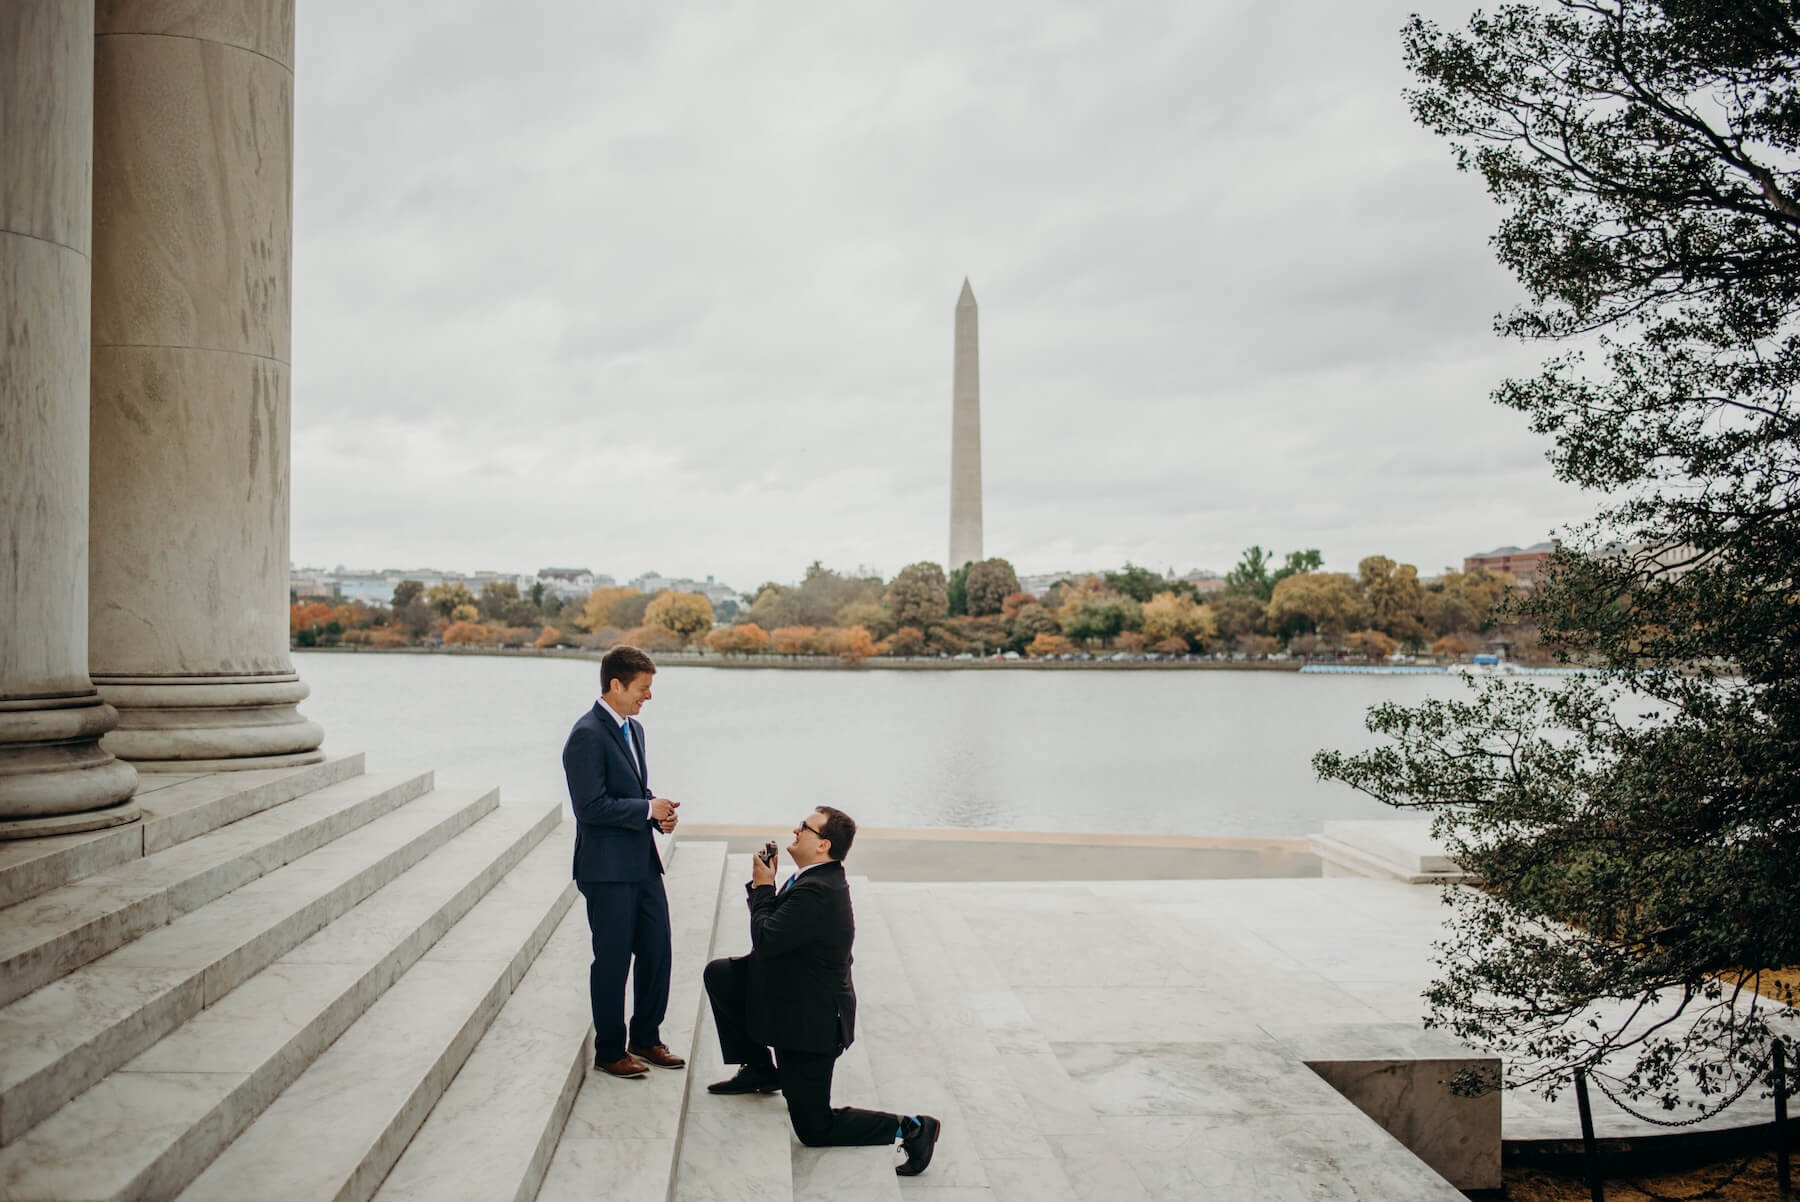 A man is proposing to another man in Washington, DC. One man is kneeling and the other man is standing.